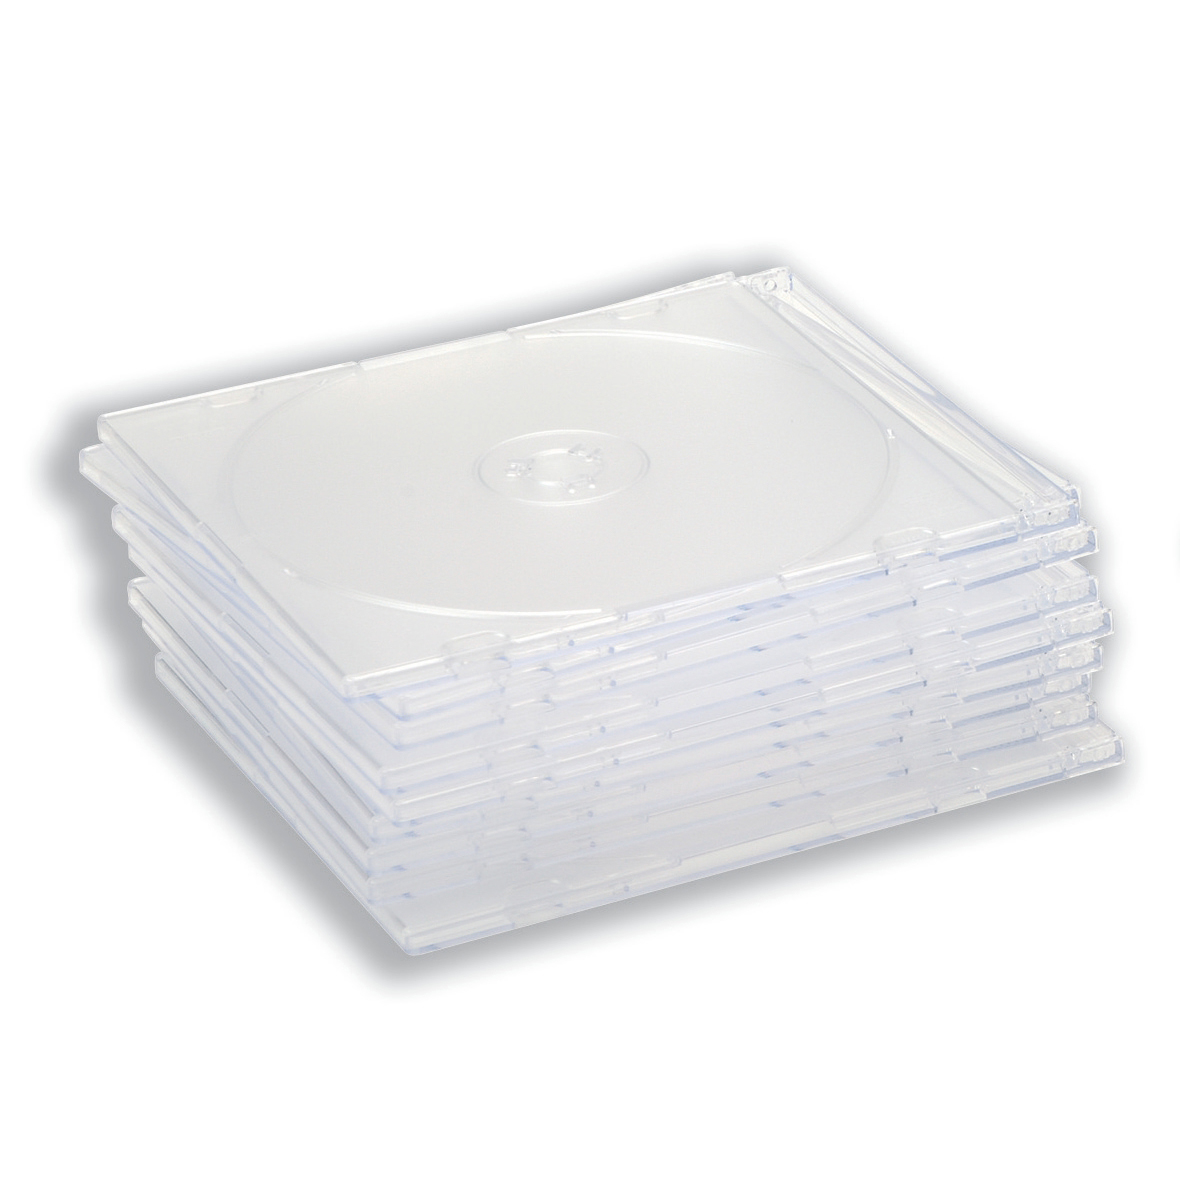 Compact disk cases CD Slimline Jewel Case Clear [Pack 100]